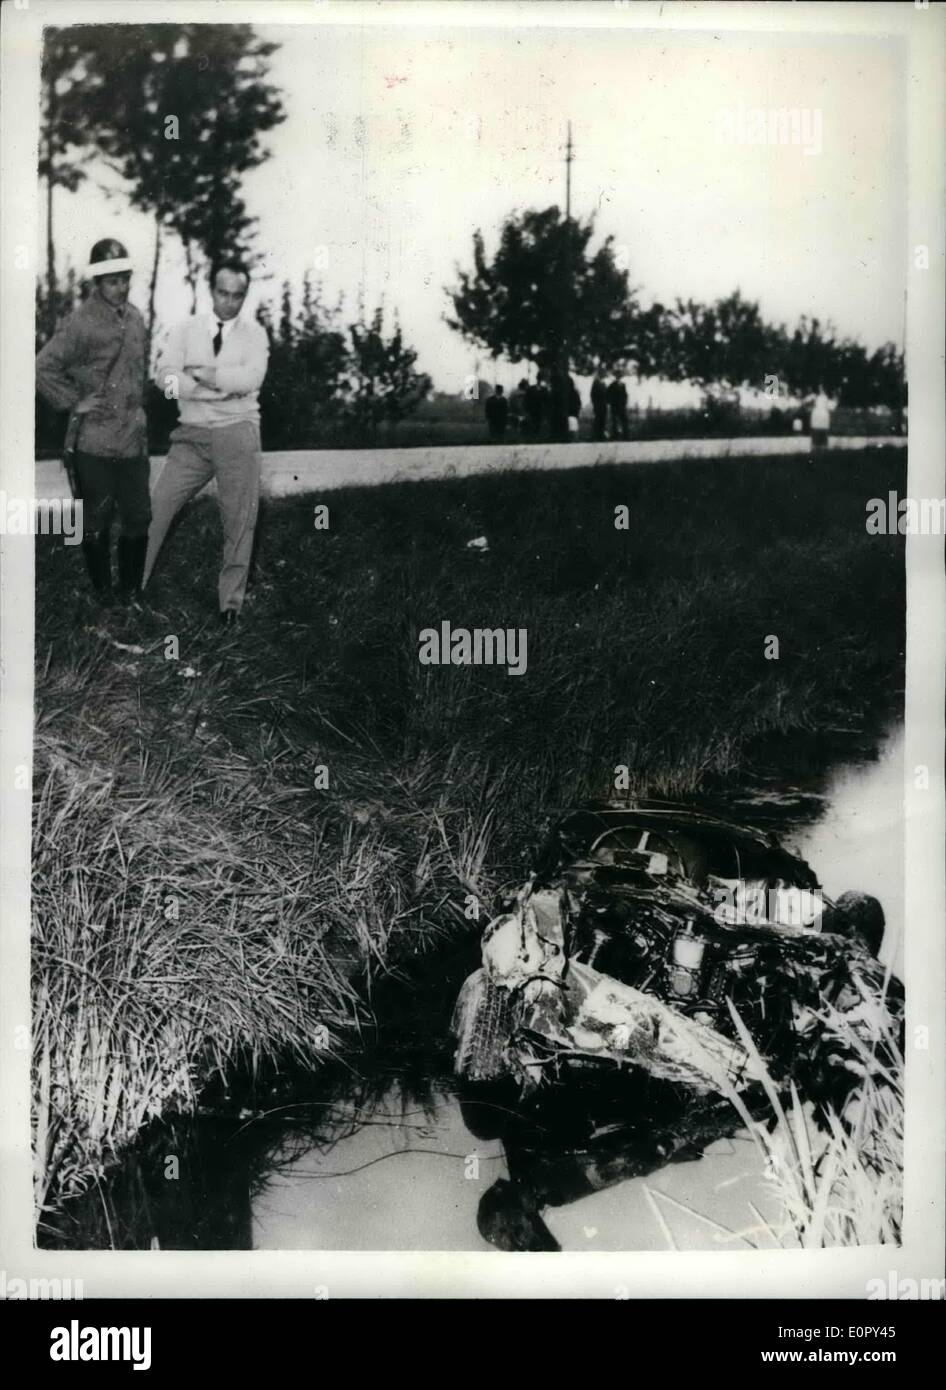 May 05, 1957 - Tragedy in the Milie Miglia Spanish Marquis crashes and fourteen die: The Spanish racing driver wealthy Marquis Alfonso de Portago and his co-driver were killed when they ferrari car crashed into the crowd after a tyre had burst near Bresoia during the Italian Mille Miglia Road Race. Twelve spectators lost their lives. Photo shows the wreckage of the car in a ditch after the tragedy near Bresia. - Stock Image